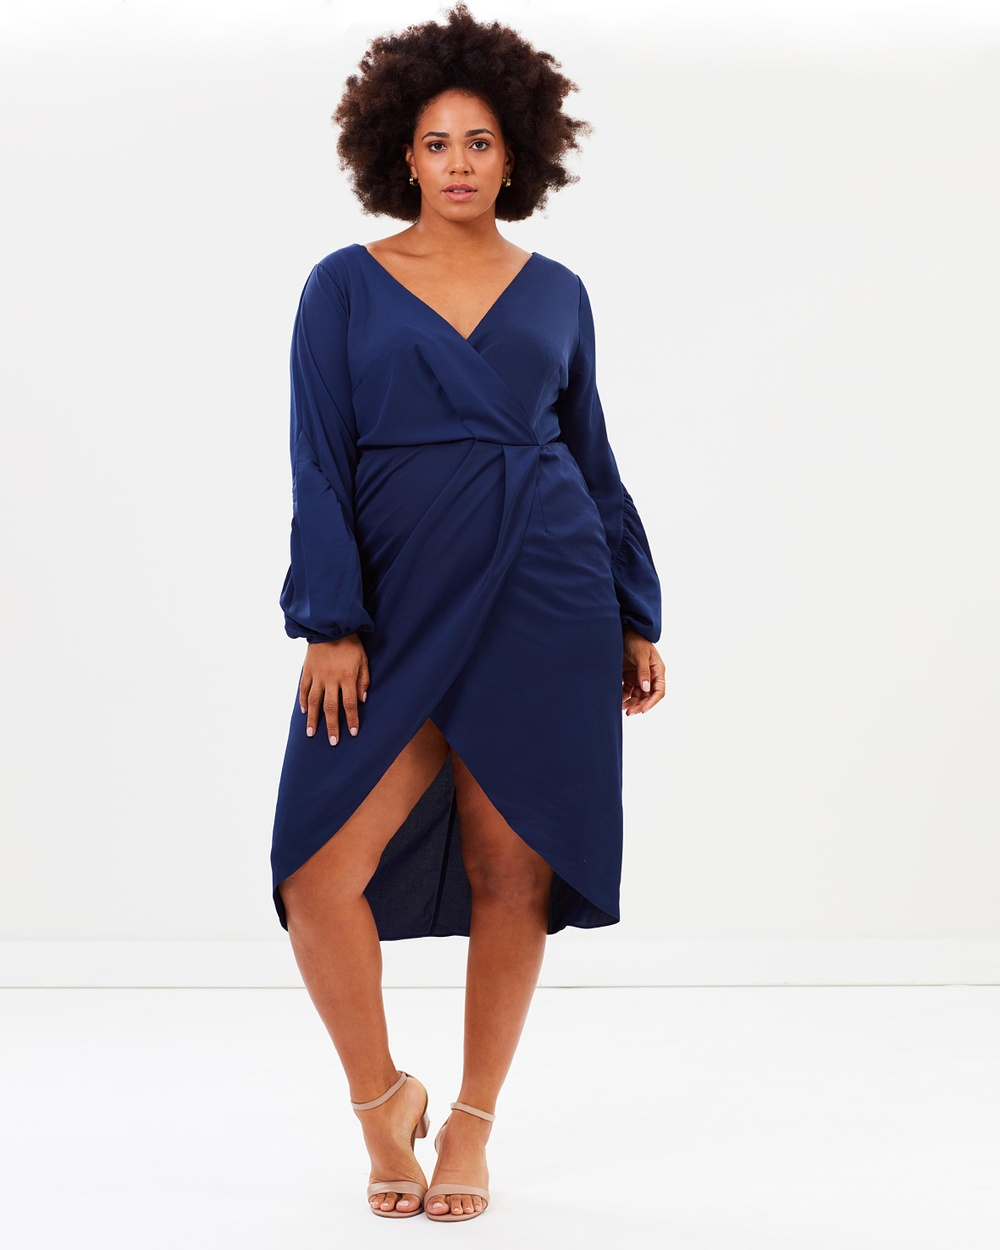 Cooper St CS CURVY Drape Dress Dresses Navy CS CURVY Drape Dress